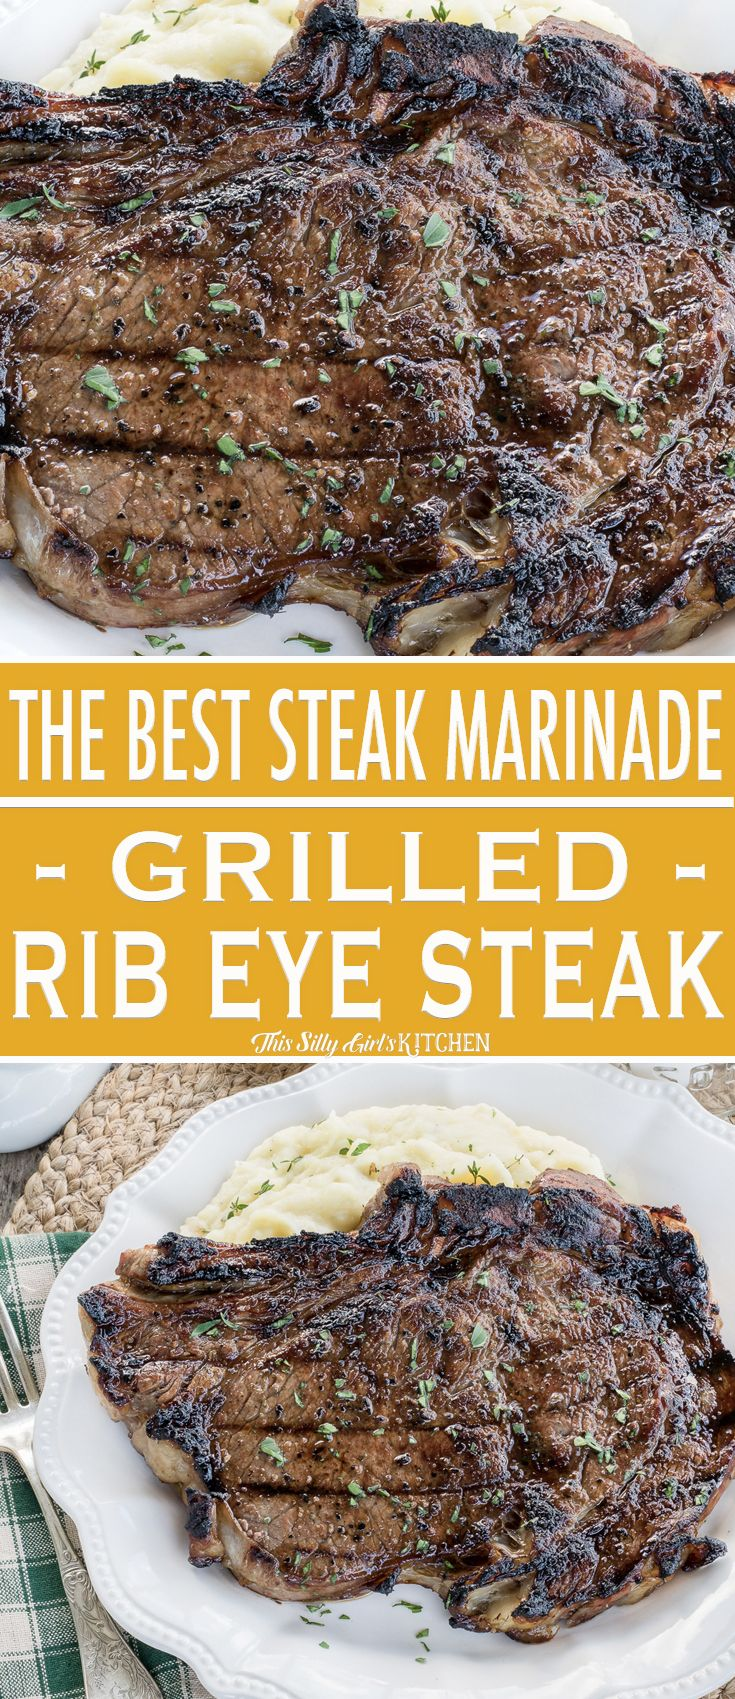 The Best Steak Marinade For Grilled Ribeye Steaks Recipe